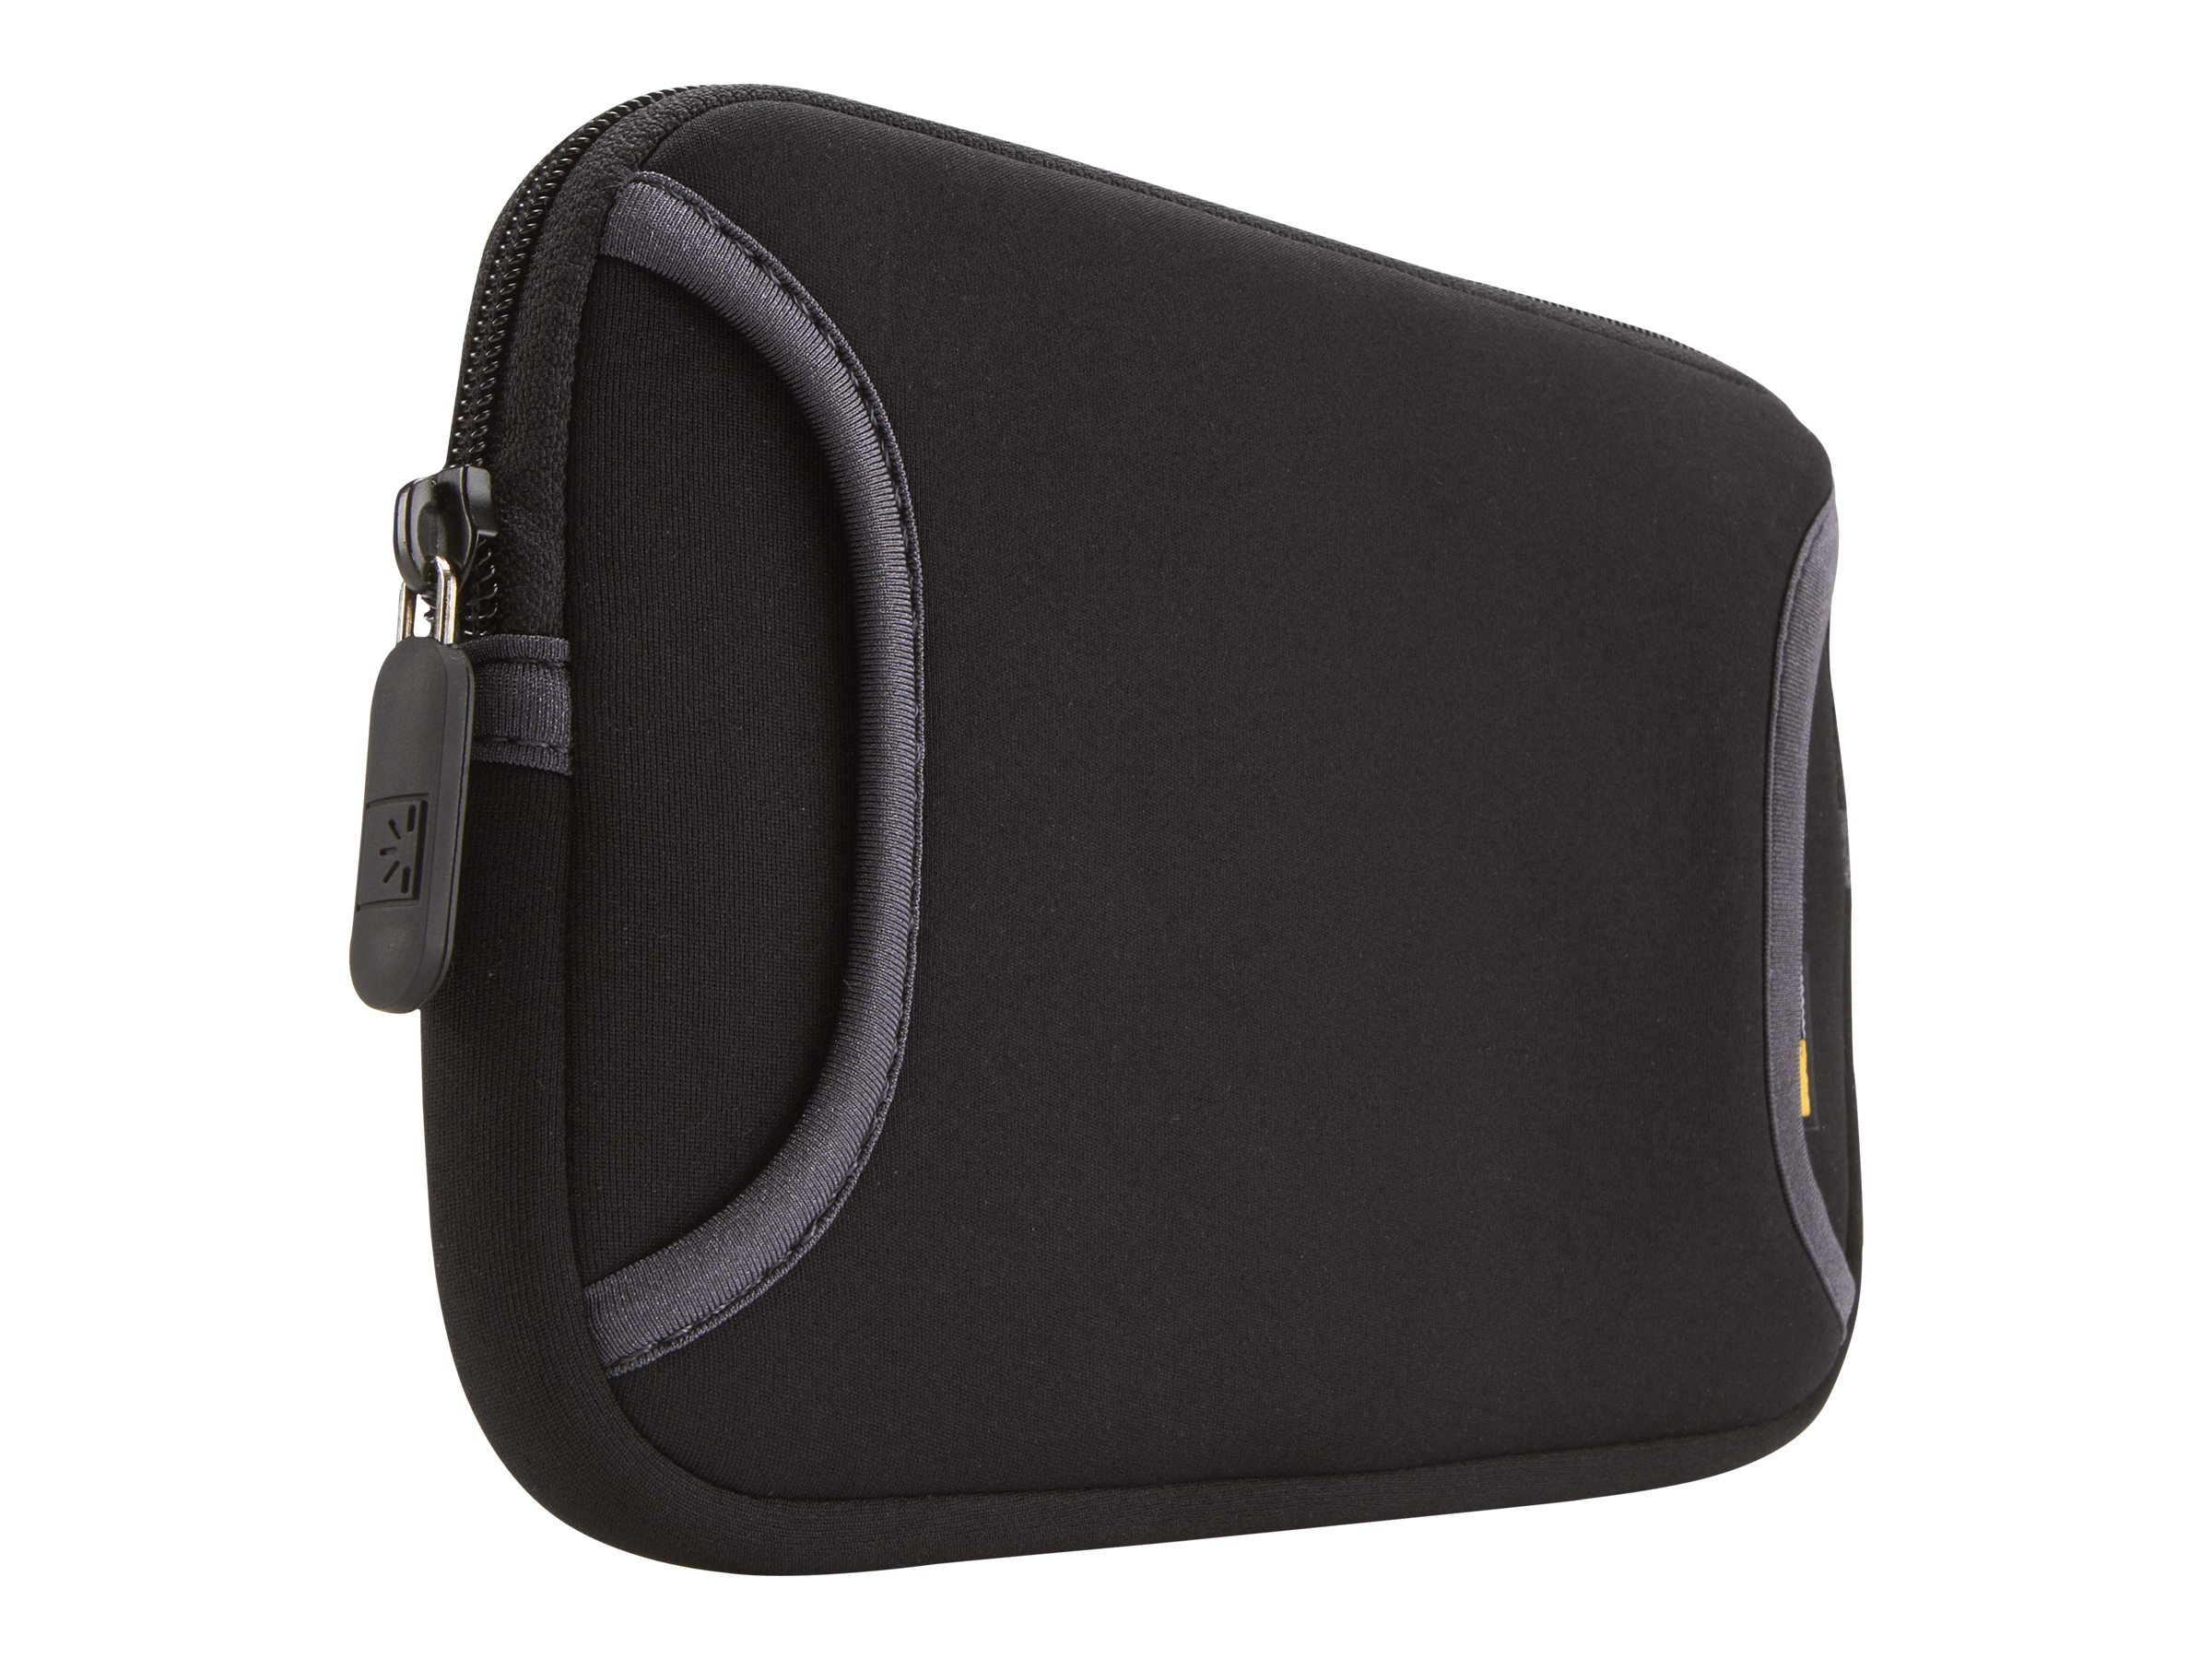 Case Logic 7 Tablet Sleeve, Black, LNEO-7BLACK, 12623192, Protective & Dust Covers